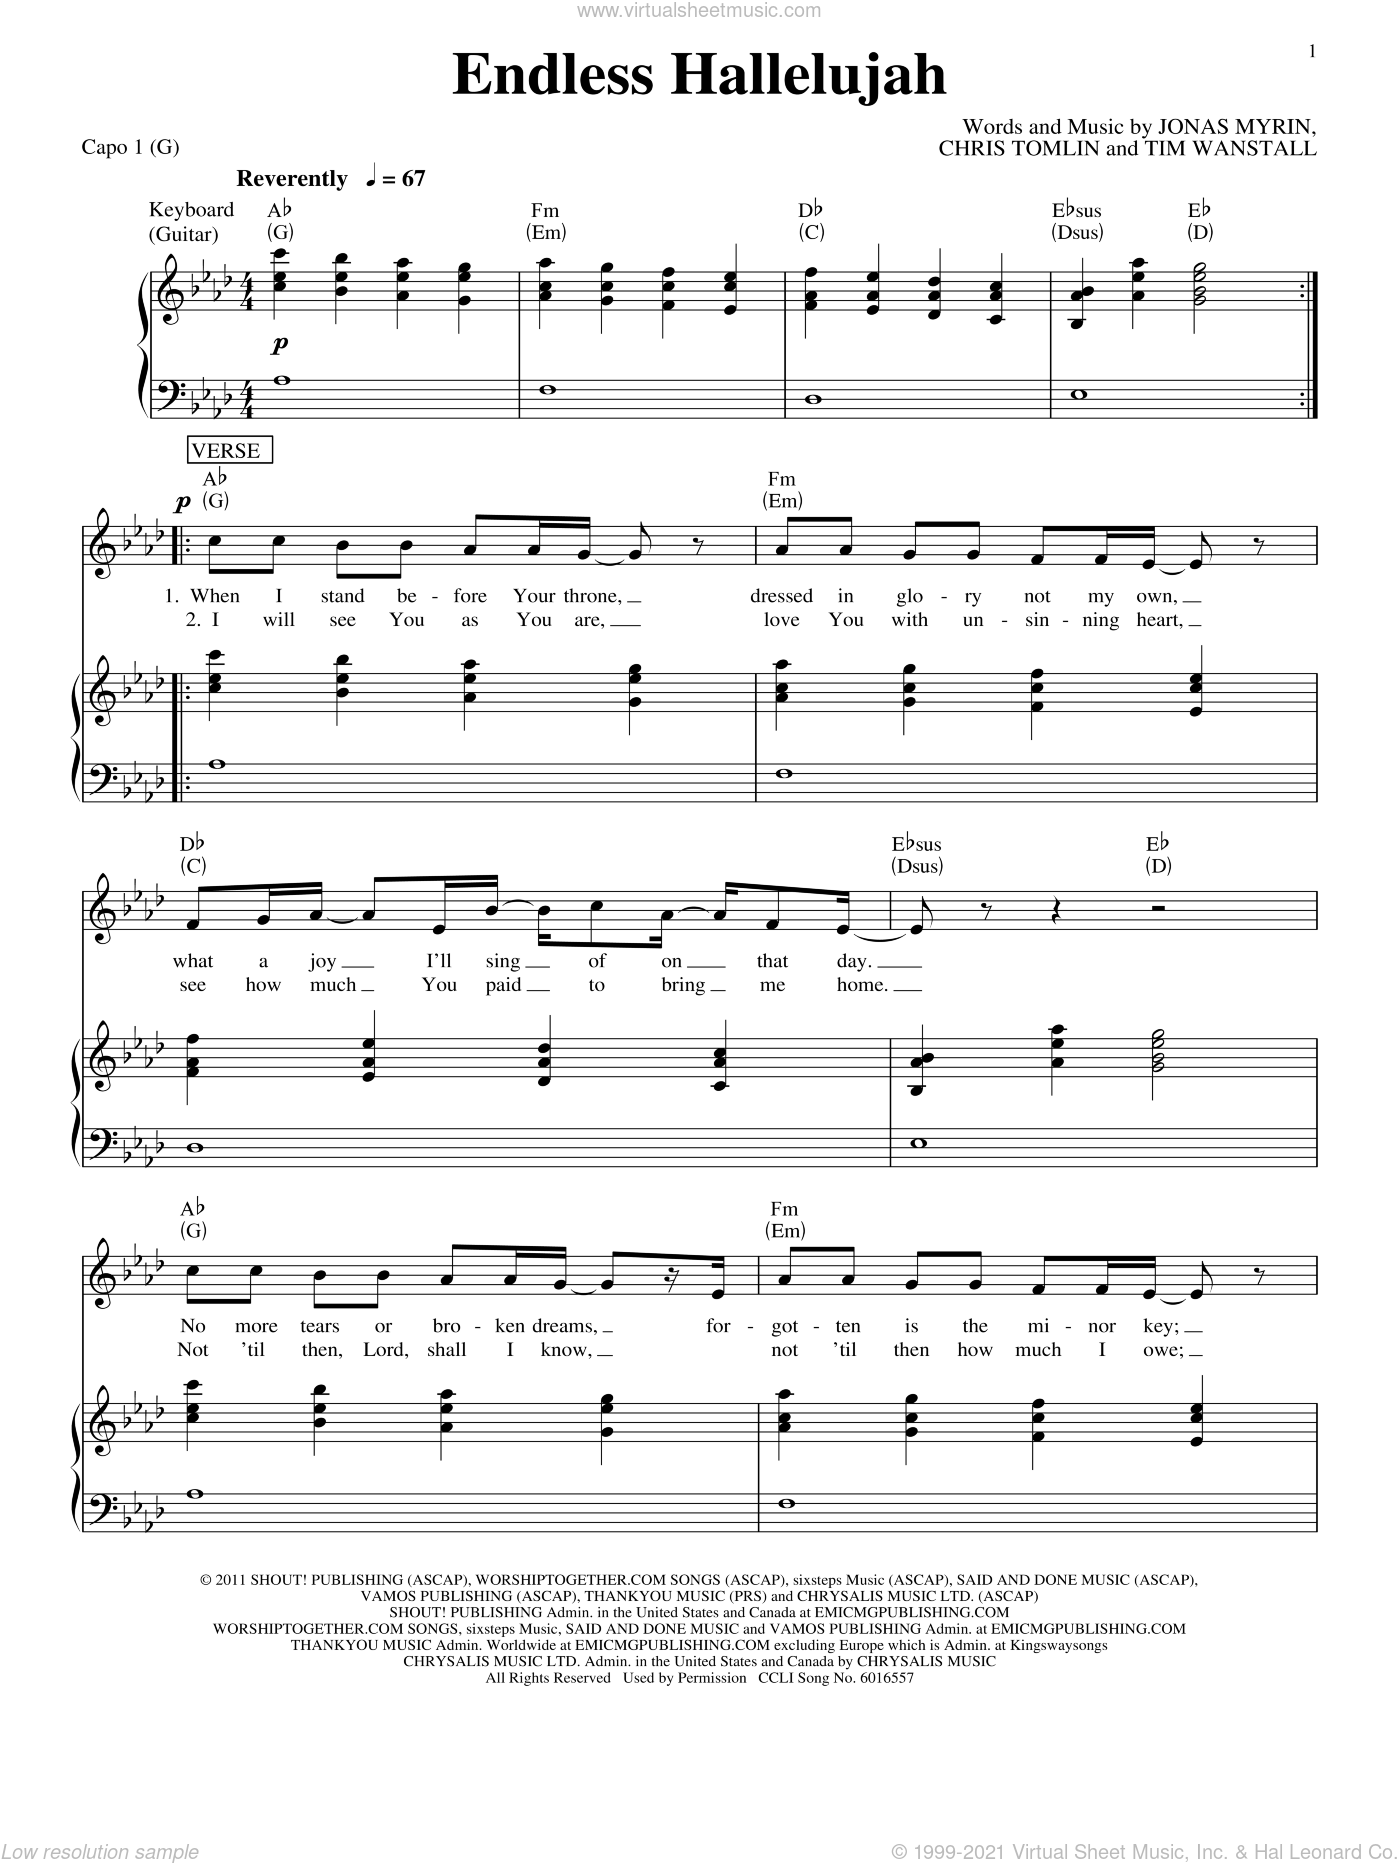 Endless Hallelujah sheet music for voice, piano or guitar by Matt Redman, Chris Tomlin, Jonas Myrin and Tim Wanstall, intermediate skill level